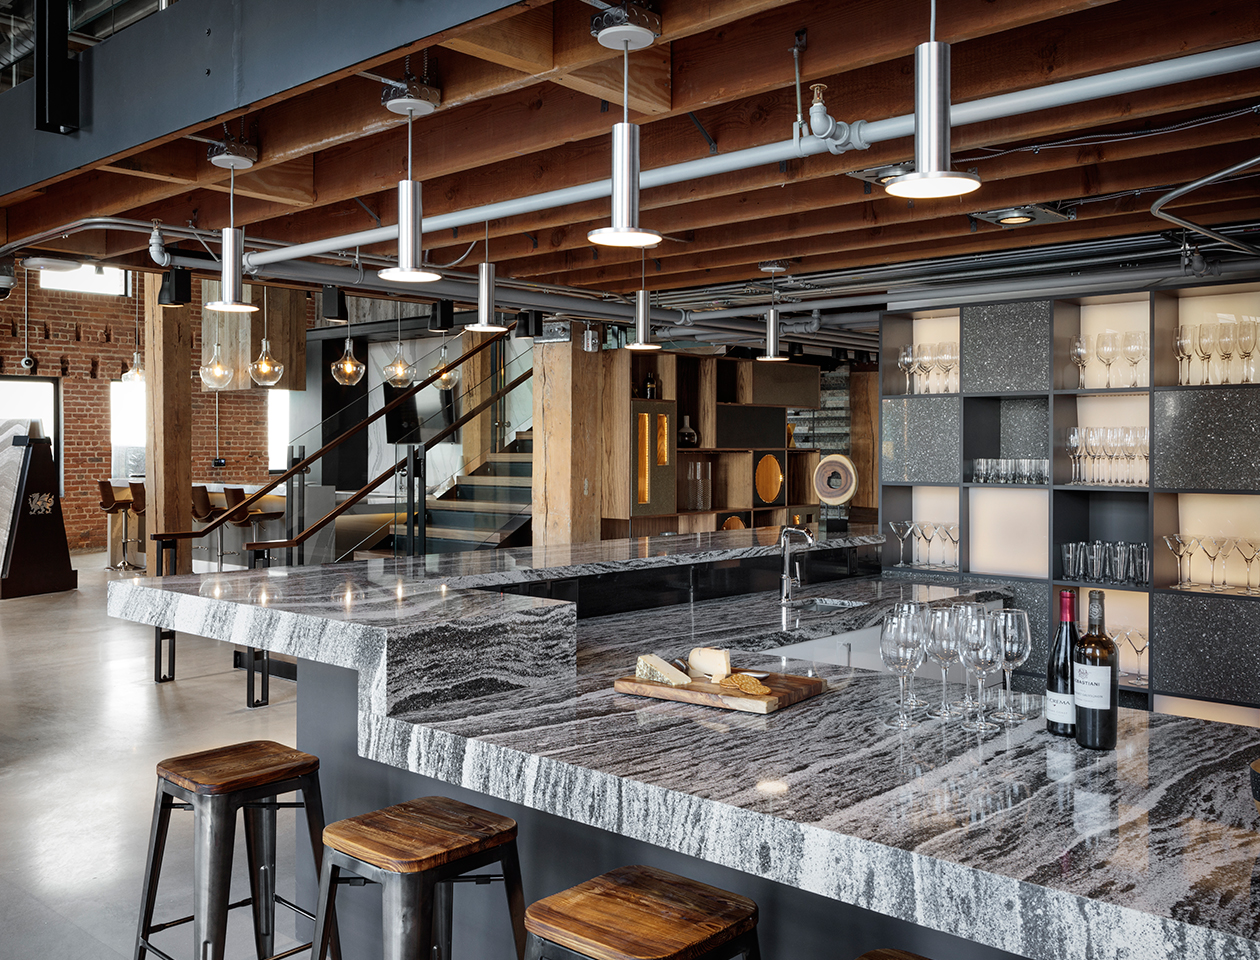 Finance Your Remodeling Project Countertops Kitchen Bath - How to finance kitchen remodel